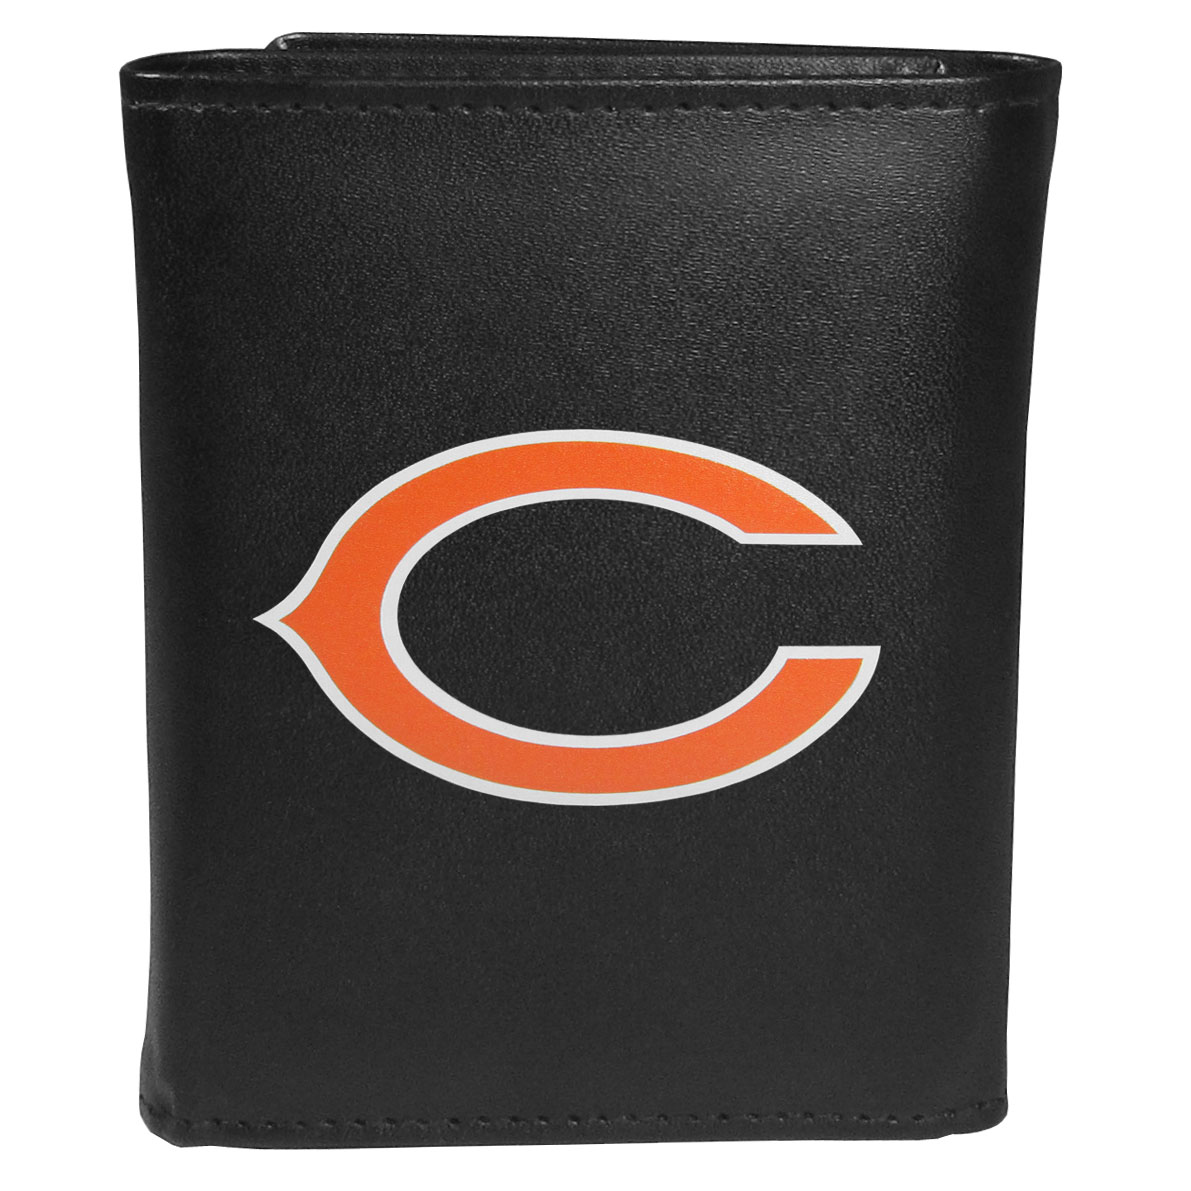 Chicago Bears Tri-fold Wallet Large Logo - Sports fans do not have to sacrifice style with this classic tri-fold wallet that sports theChicago Bears?extra large logo. This men's fashion accessory has a leather grain look and expert craftmanship for a quality wallet at a great price. The wallet features inner credit card slots, windowed ID slot and a large billfold pocket. The front of the wallet features an extra large printed team logo.